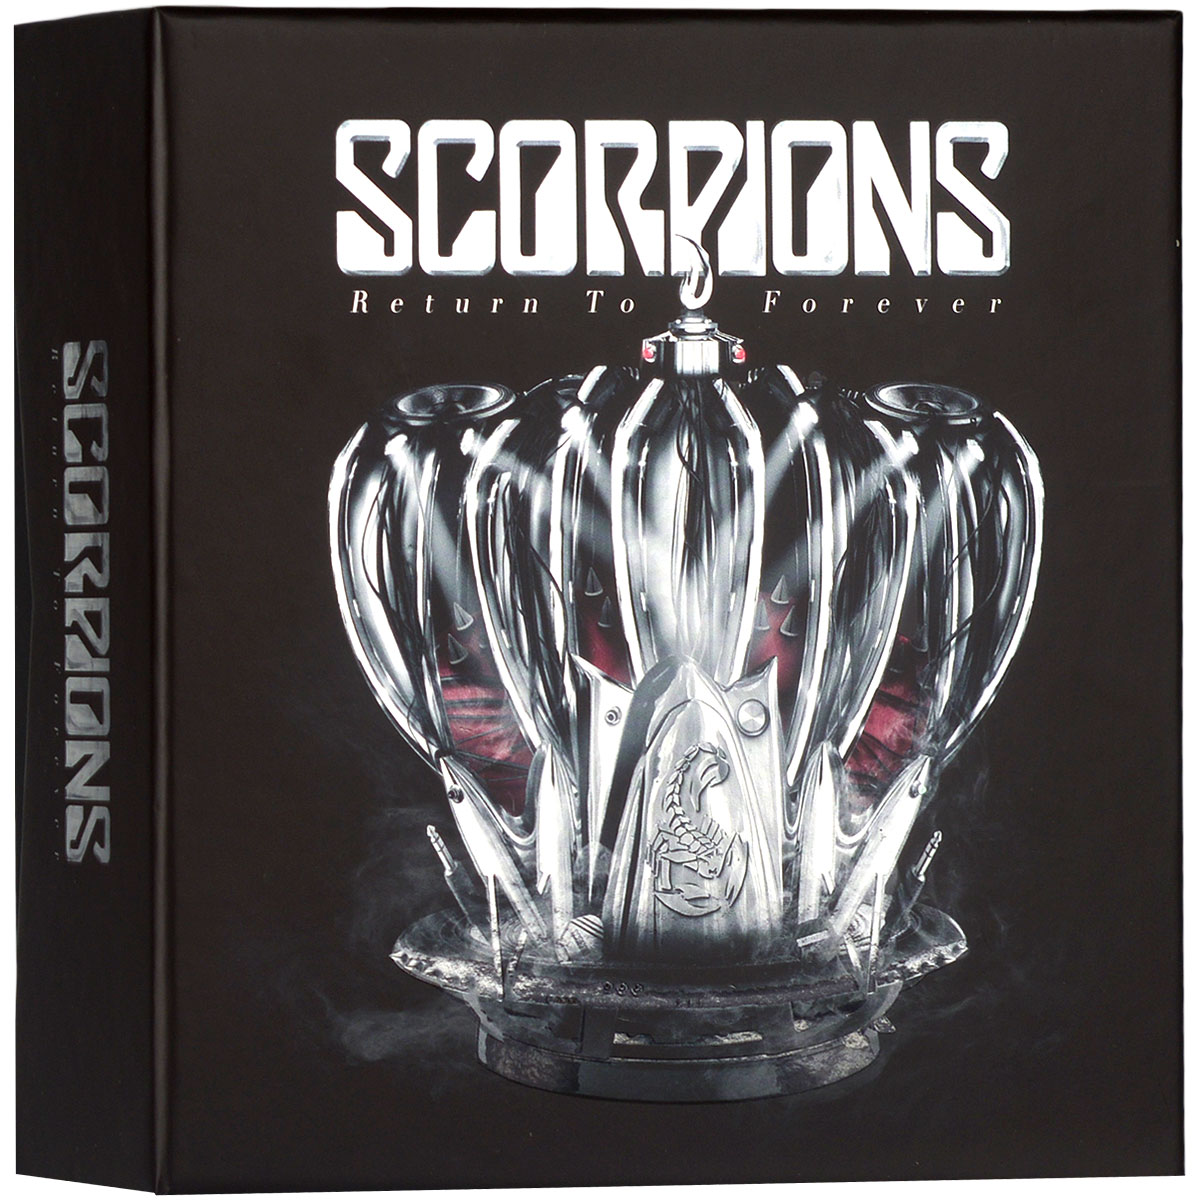 Scorpions Scorpions. Return To Forever. Limited 50th Anniversary Collector'S Box (3 CD + LP) scorpions – tokyo tapes 50th anniversary deluxe edition 2 lp 2 cd